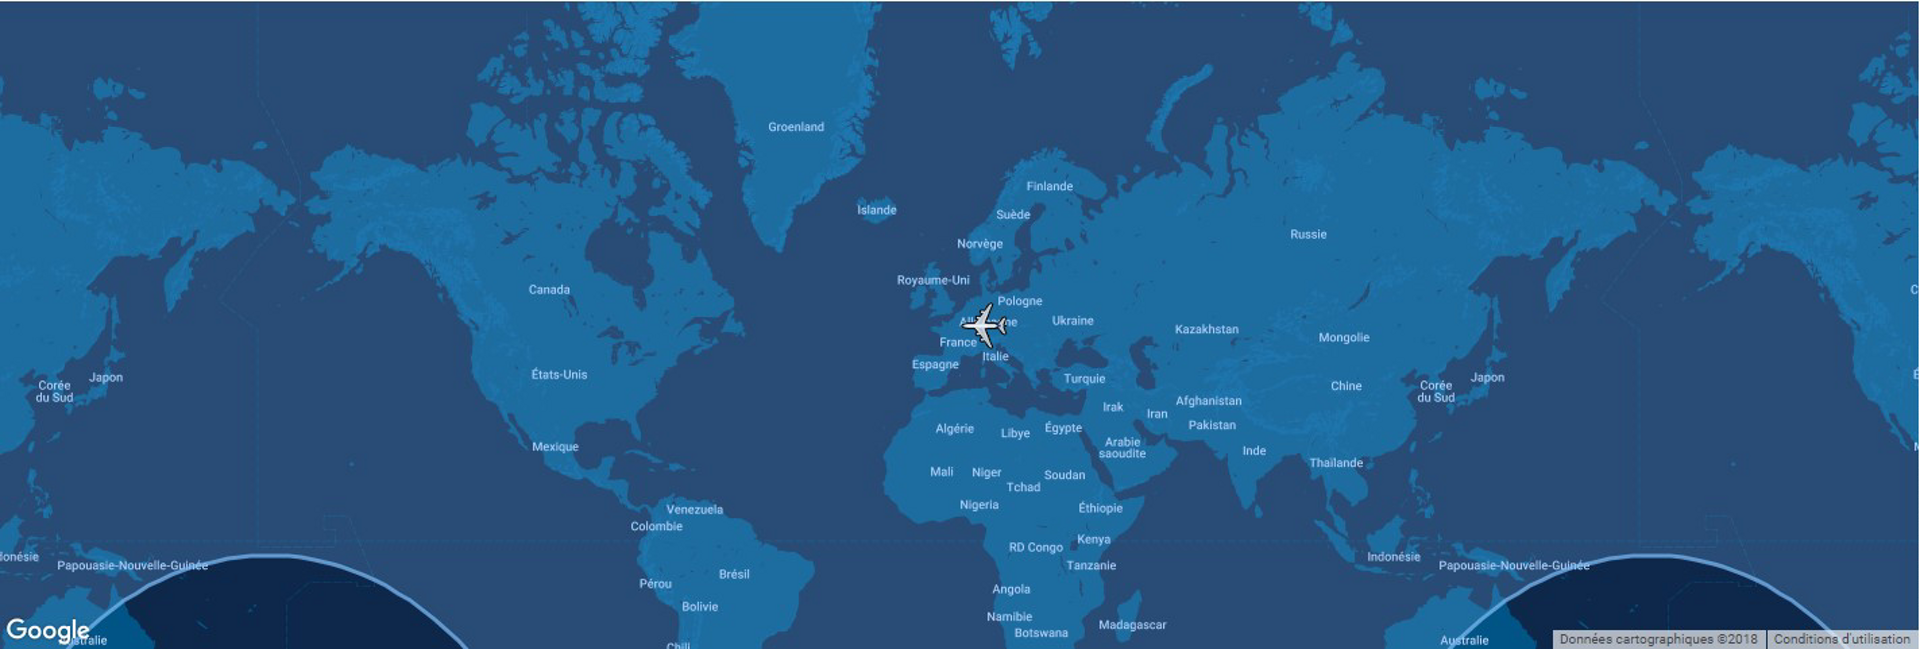 Overlaid on a global map, the typical range for Airbus' A350-900 commercial aircraft is shown in this diagram.